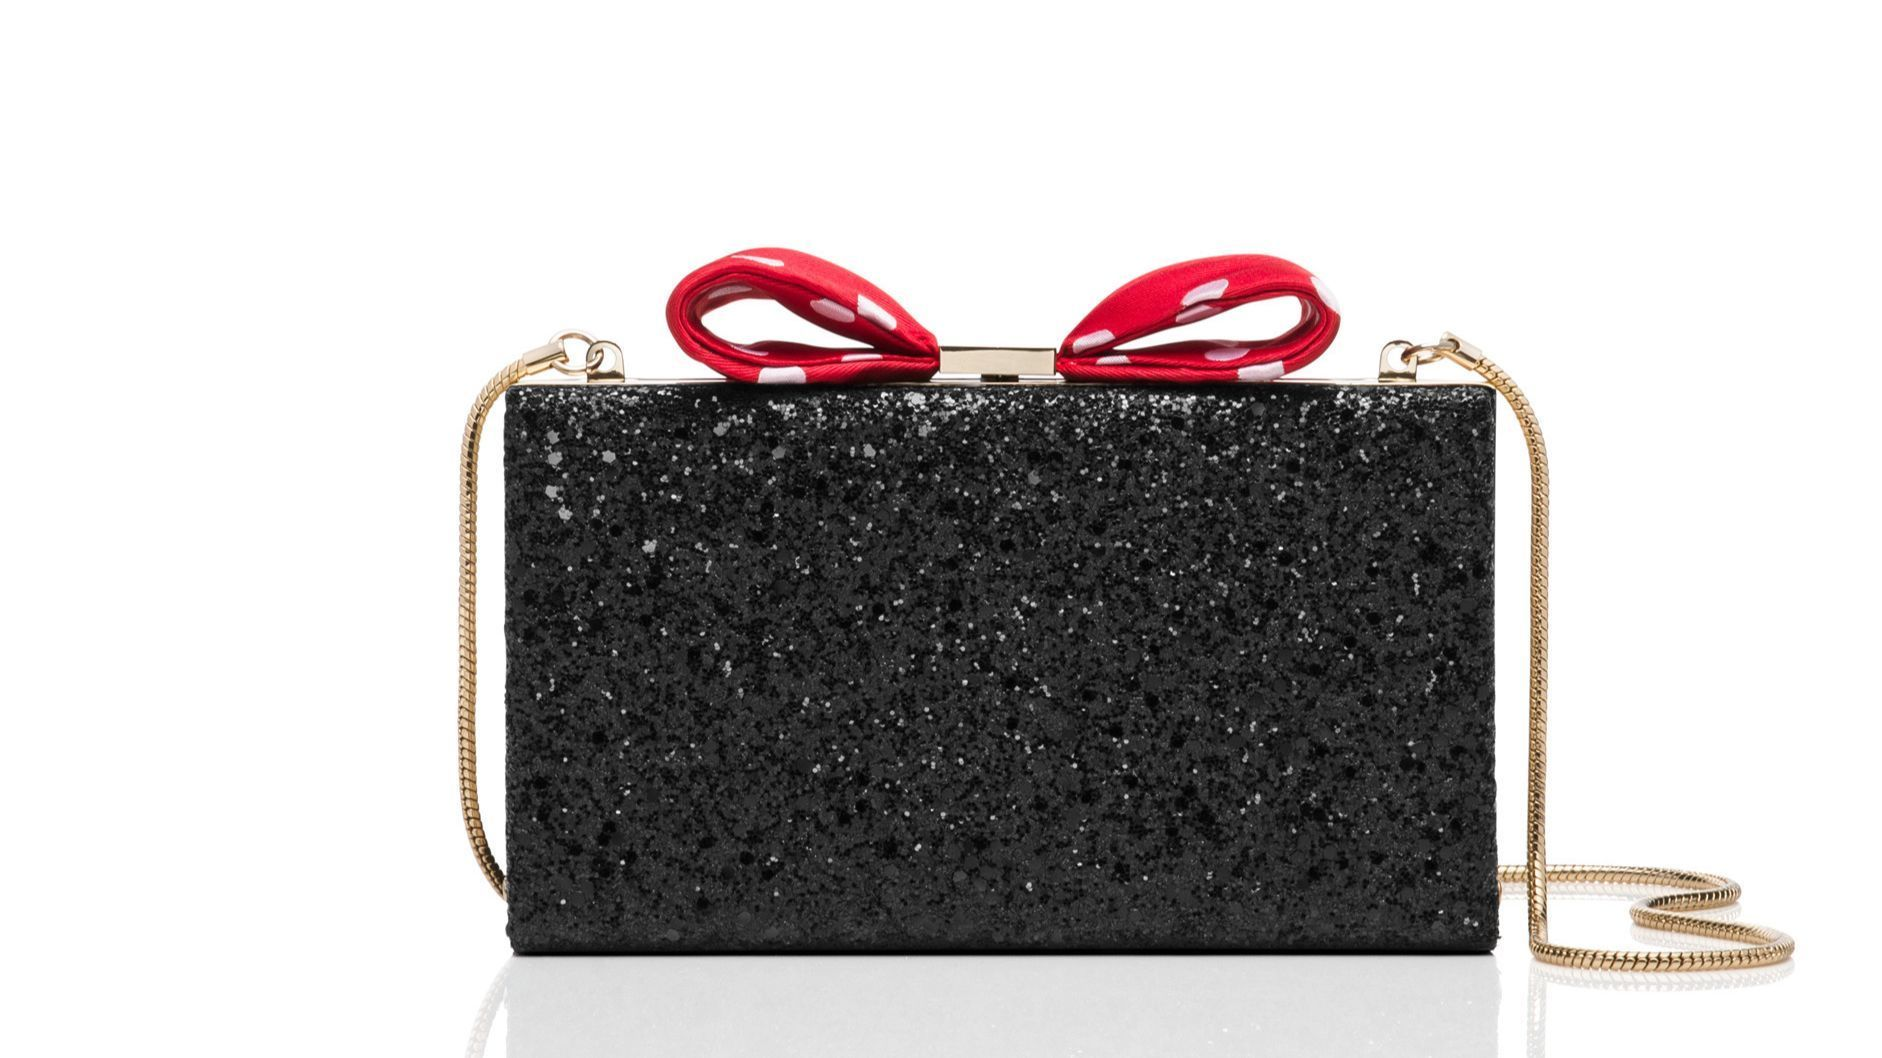 Minnie Bow Clasp, $328.00 - Kate Spade New York brings Minnie's style to life with unique glitter bo